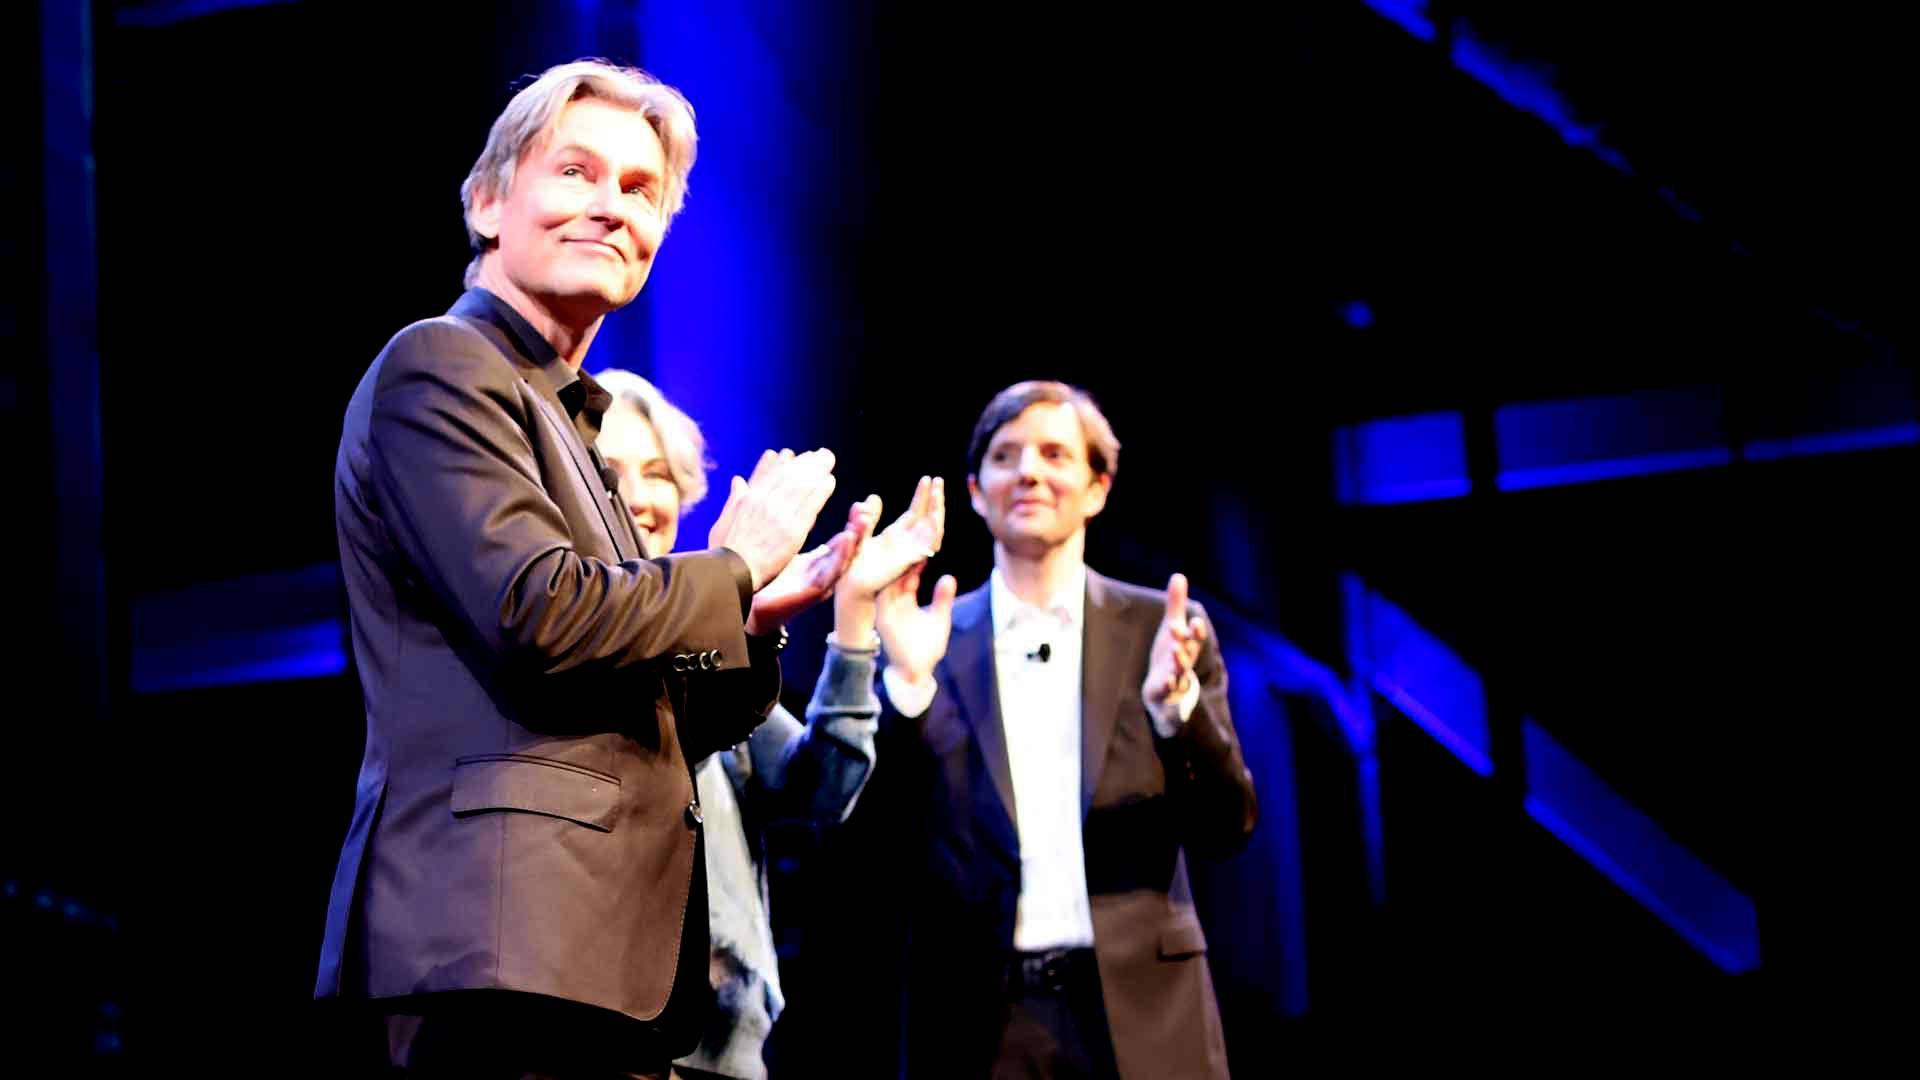 Esa-Pekka Salonen accepts his appointment as new Music Director of the San Francisco Symphony at a welcome party, Dec. 5, 2018. Gabe Meline/KQED